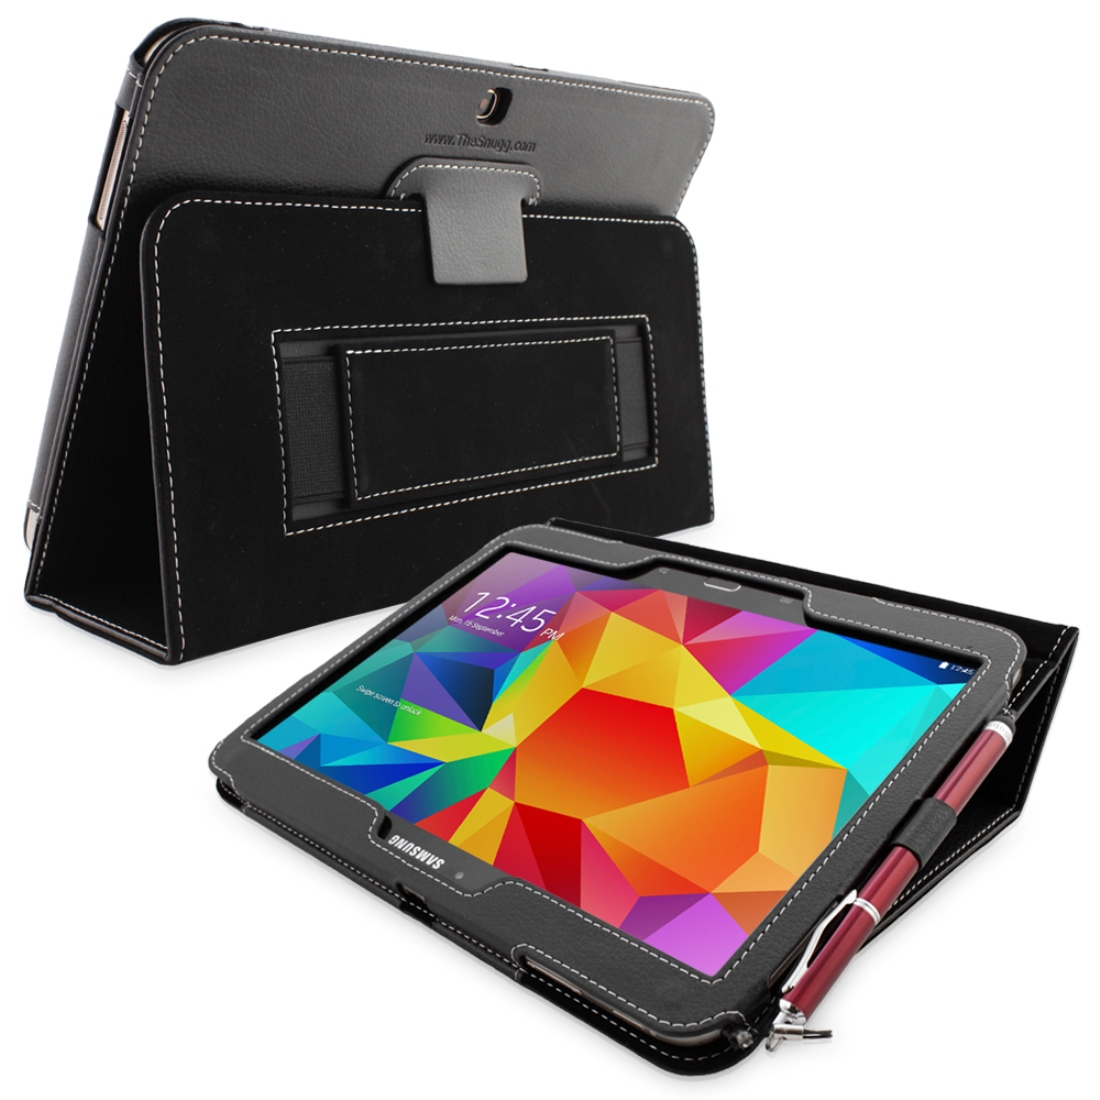 Snugg Black Leather Galaxy Tab 4 10.1 Case Cover & Flip Stand